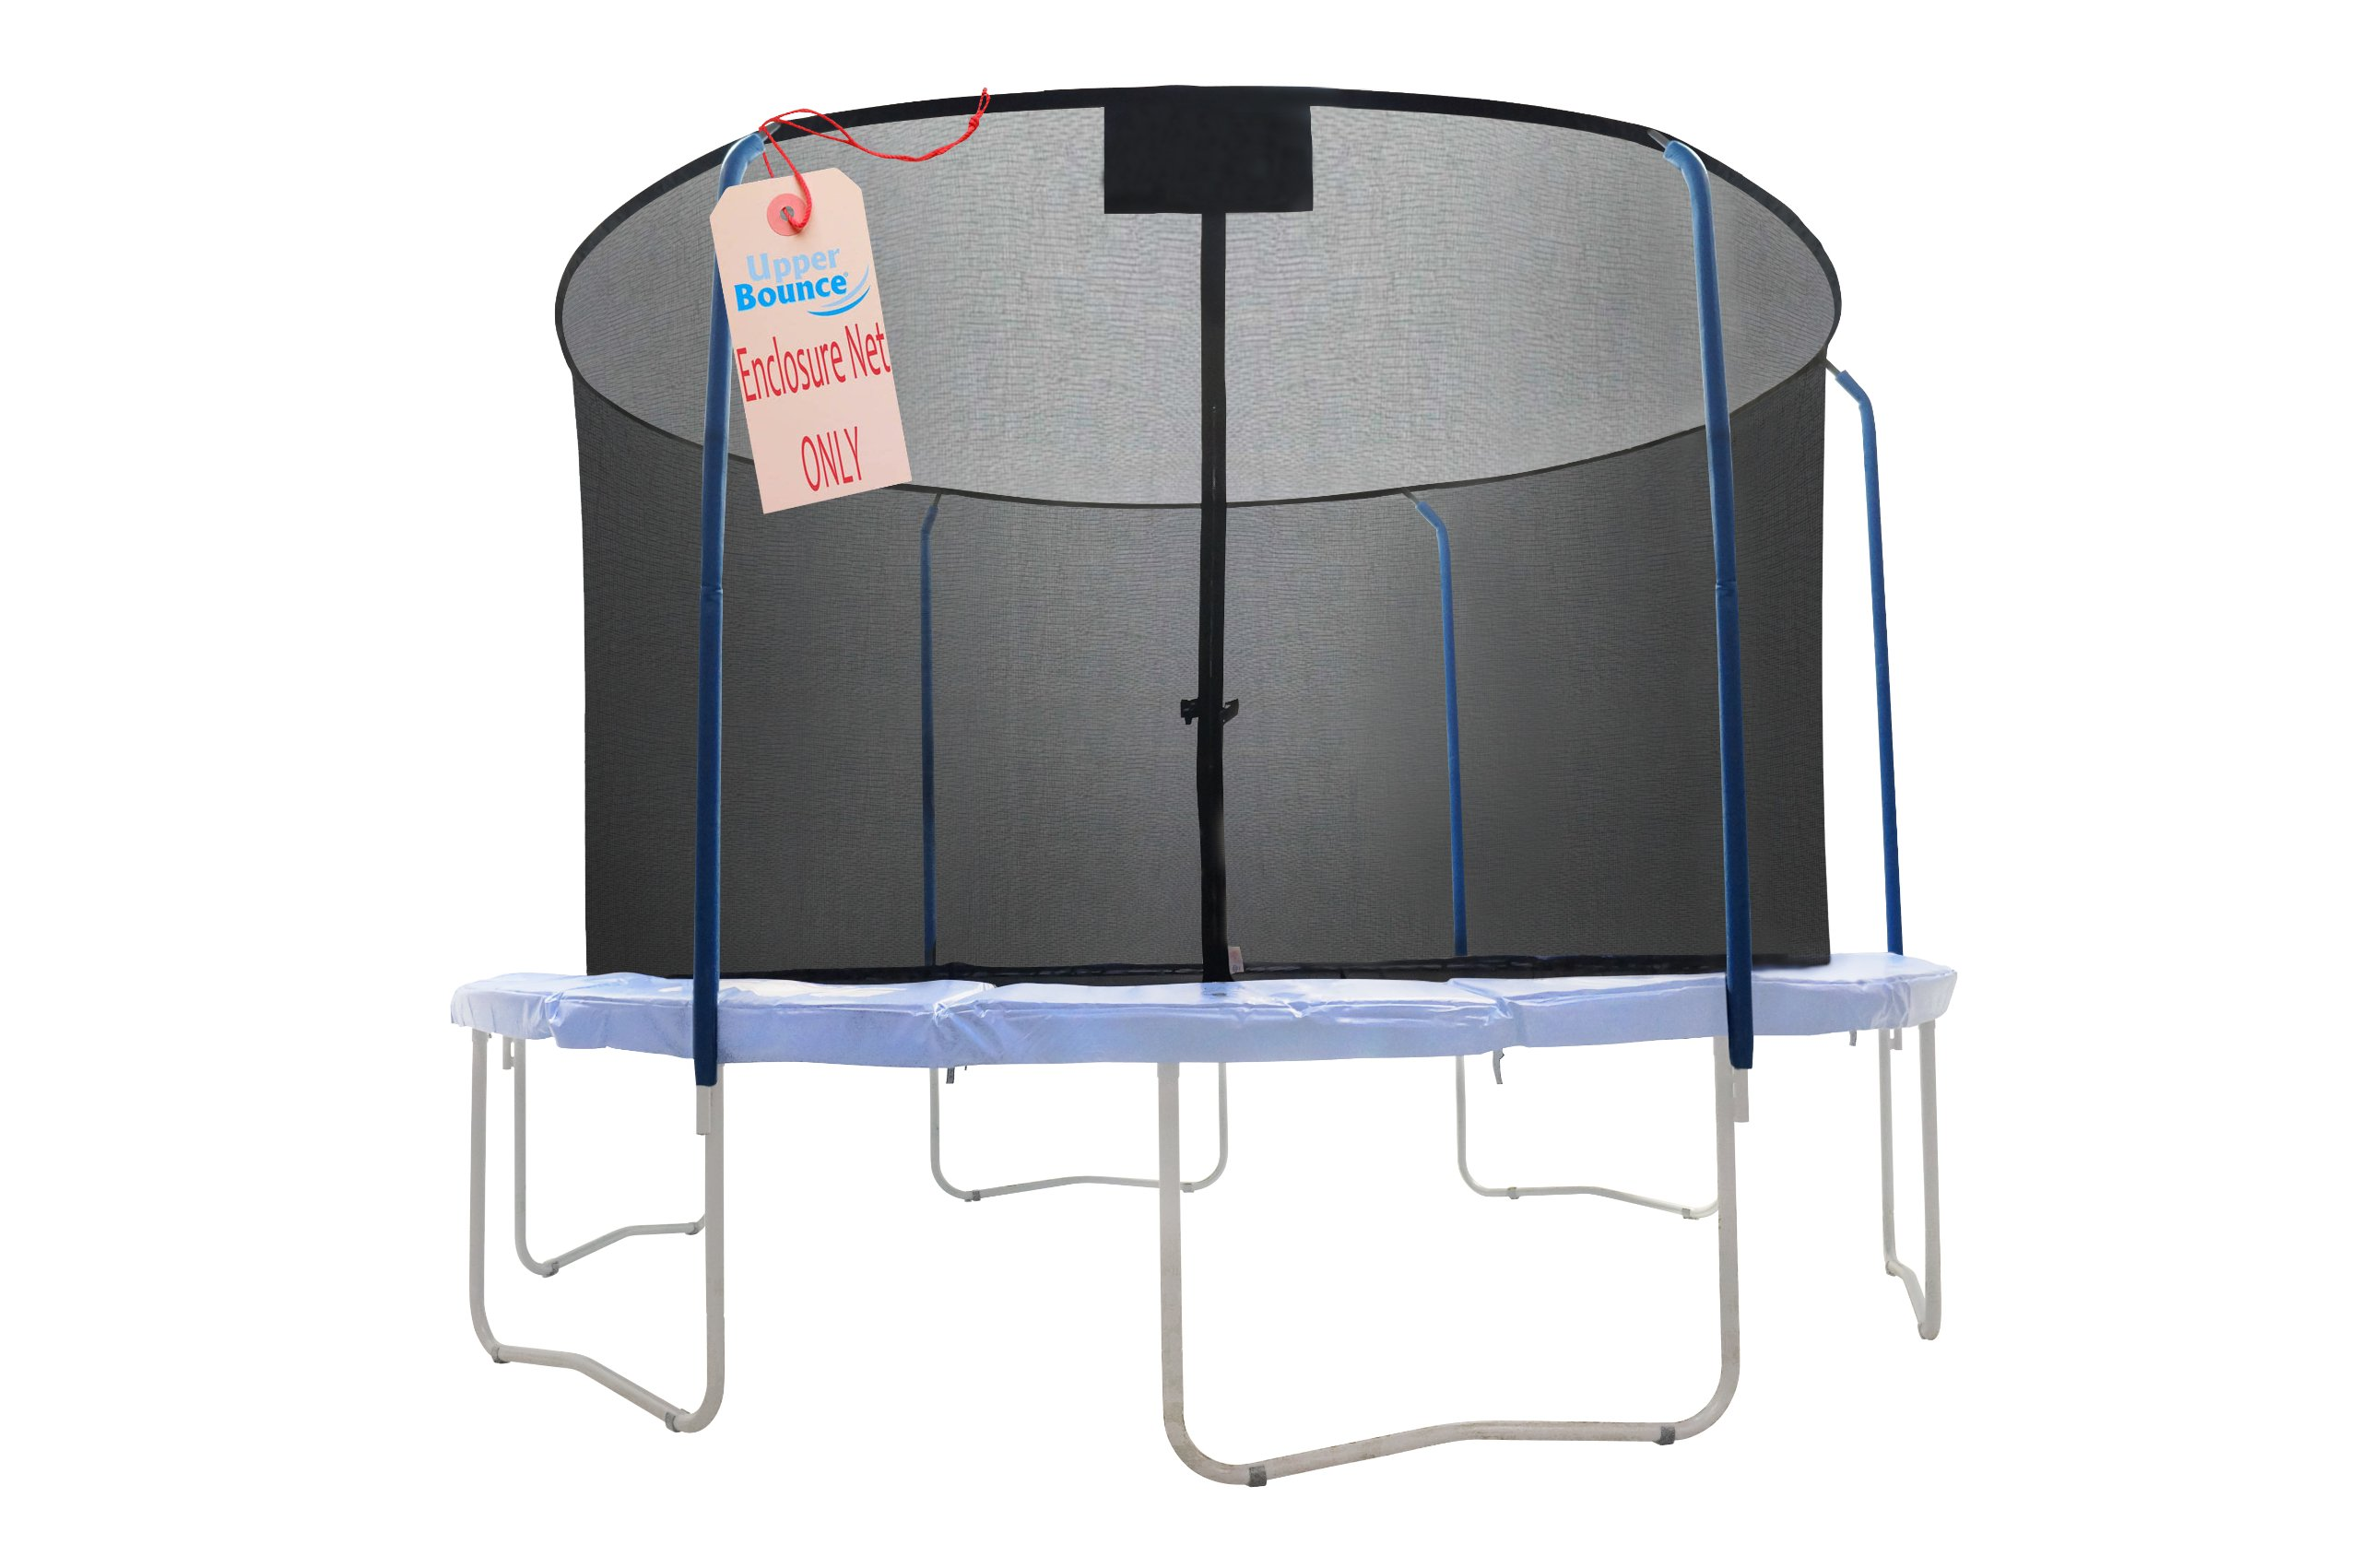 SKYTRIC Trampoline Enclosure Net (Universal) 15 ft Frame: 5 Curved Pole: with Top Ring Enclosure Systems -Sleeve on top Type- by SKYTRIC (Image #2)